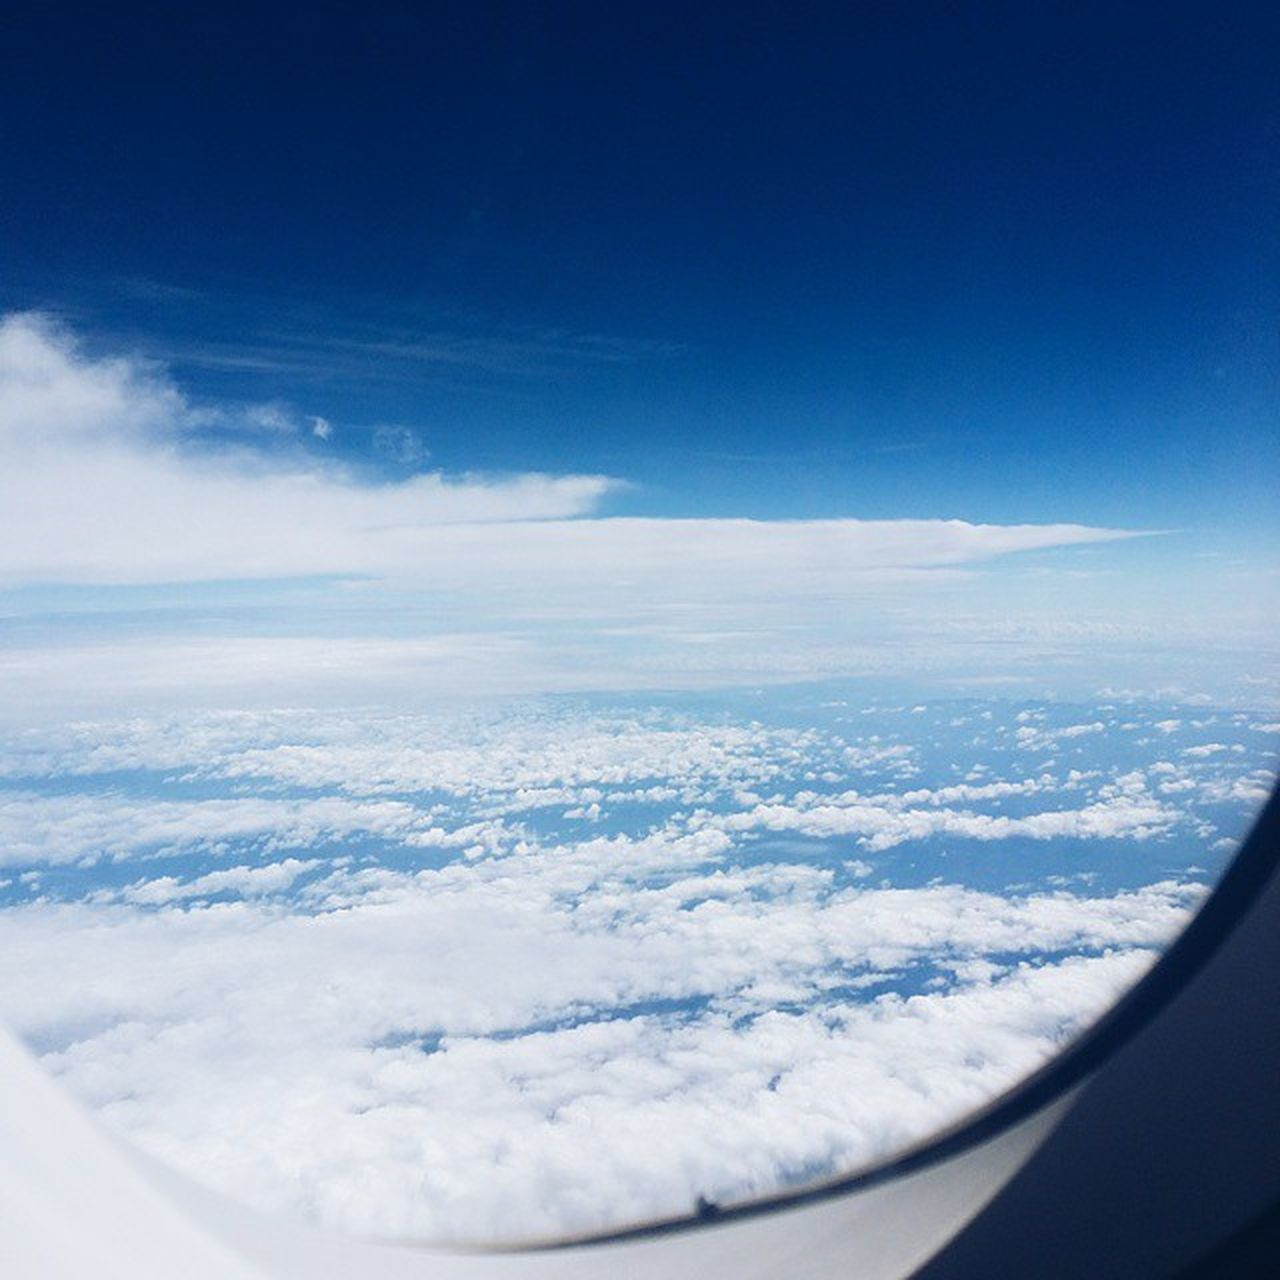 aerial view, airplane, beauty in nature, nature, cloud - sky, journey, scenics, cloudscape, sky, airplane wing, tranquility, travel, tranquil scene, transportation, no people, blue, the natural world, flying, day, outdoors, vehicle part, sky only, landscape, air vehicle, backgrounds, water